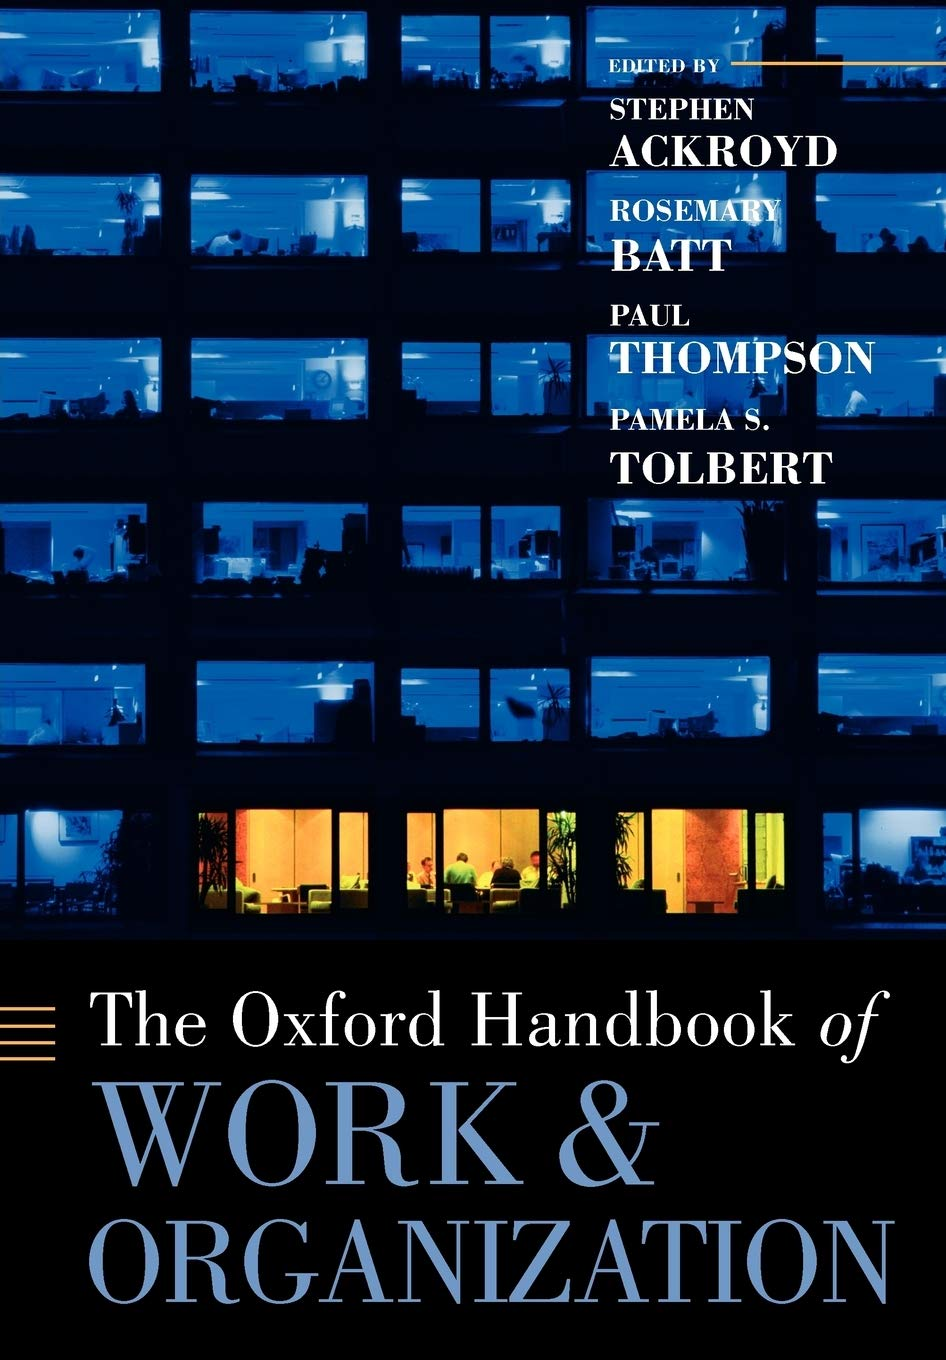 Image OfThe Oxford Handbook Of Work And Organization (Oxford Handbooks)